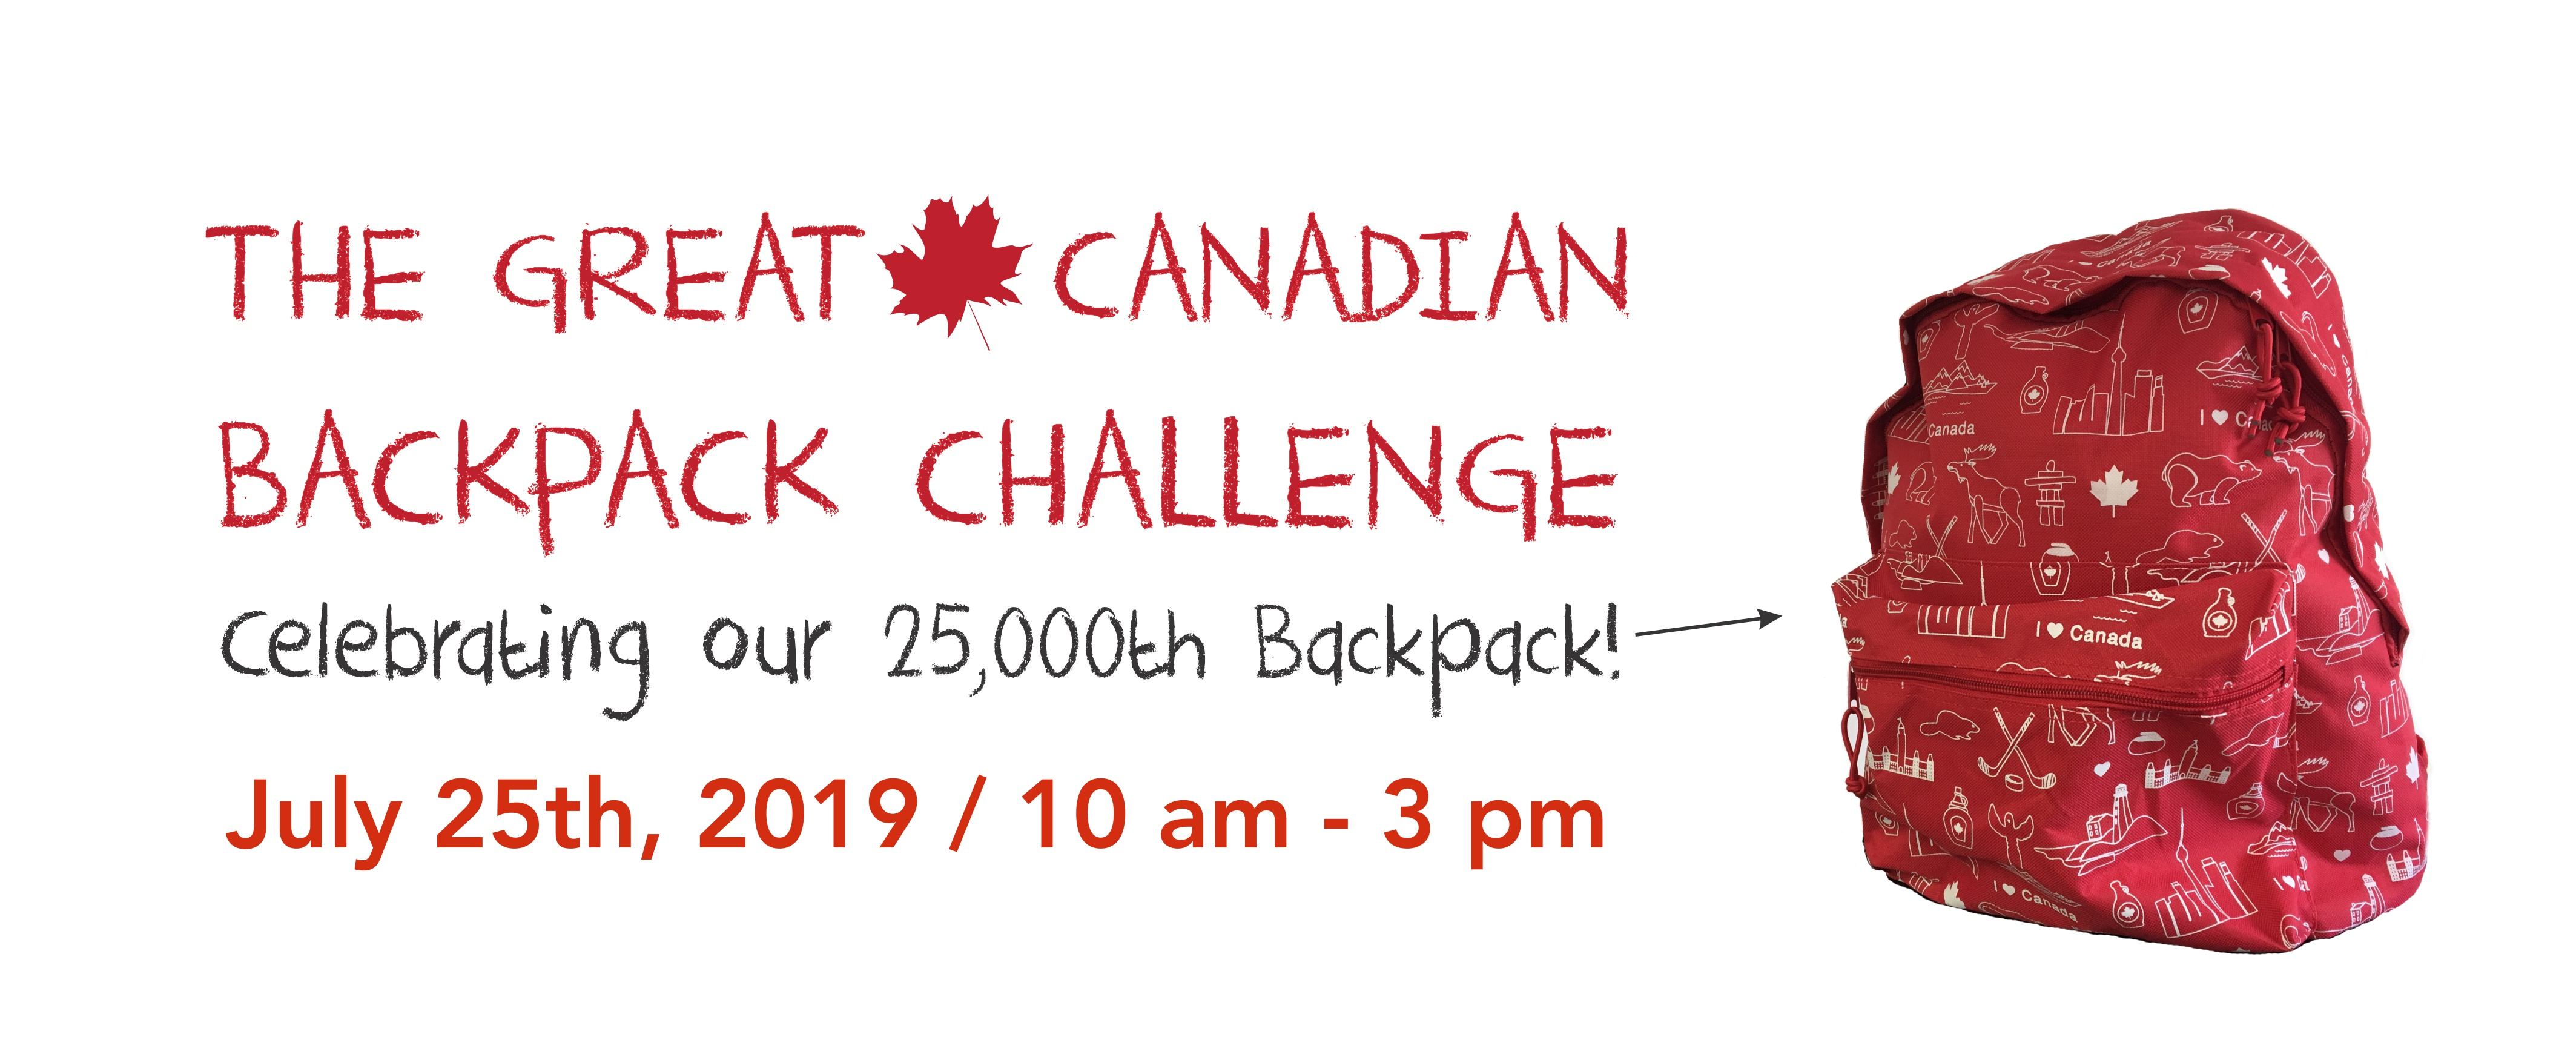 Please join us for our Great Canadian Backpack Challenge!